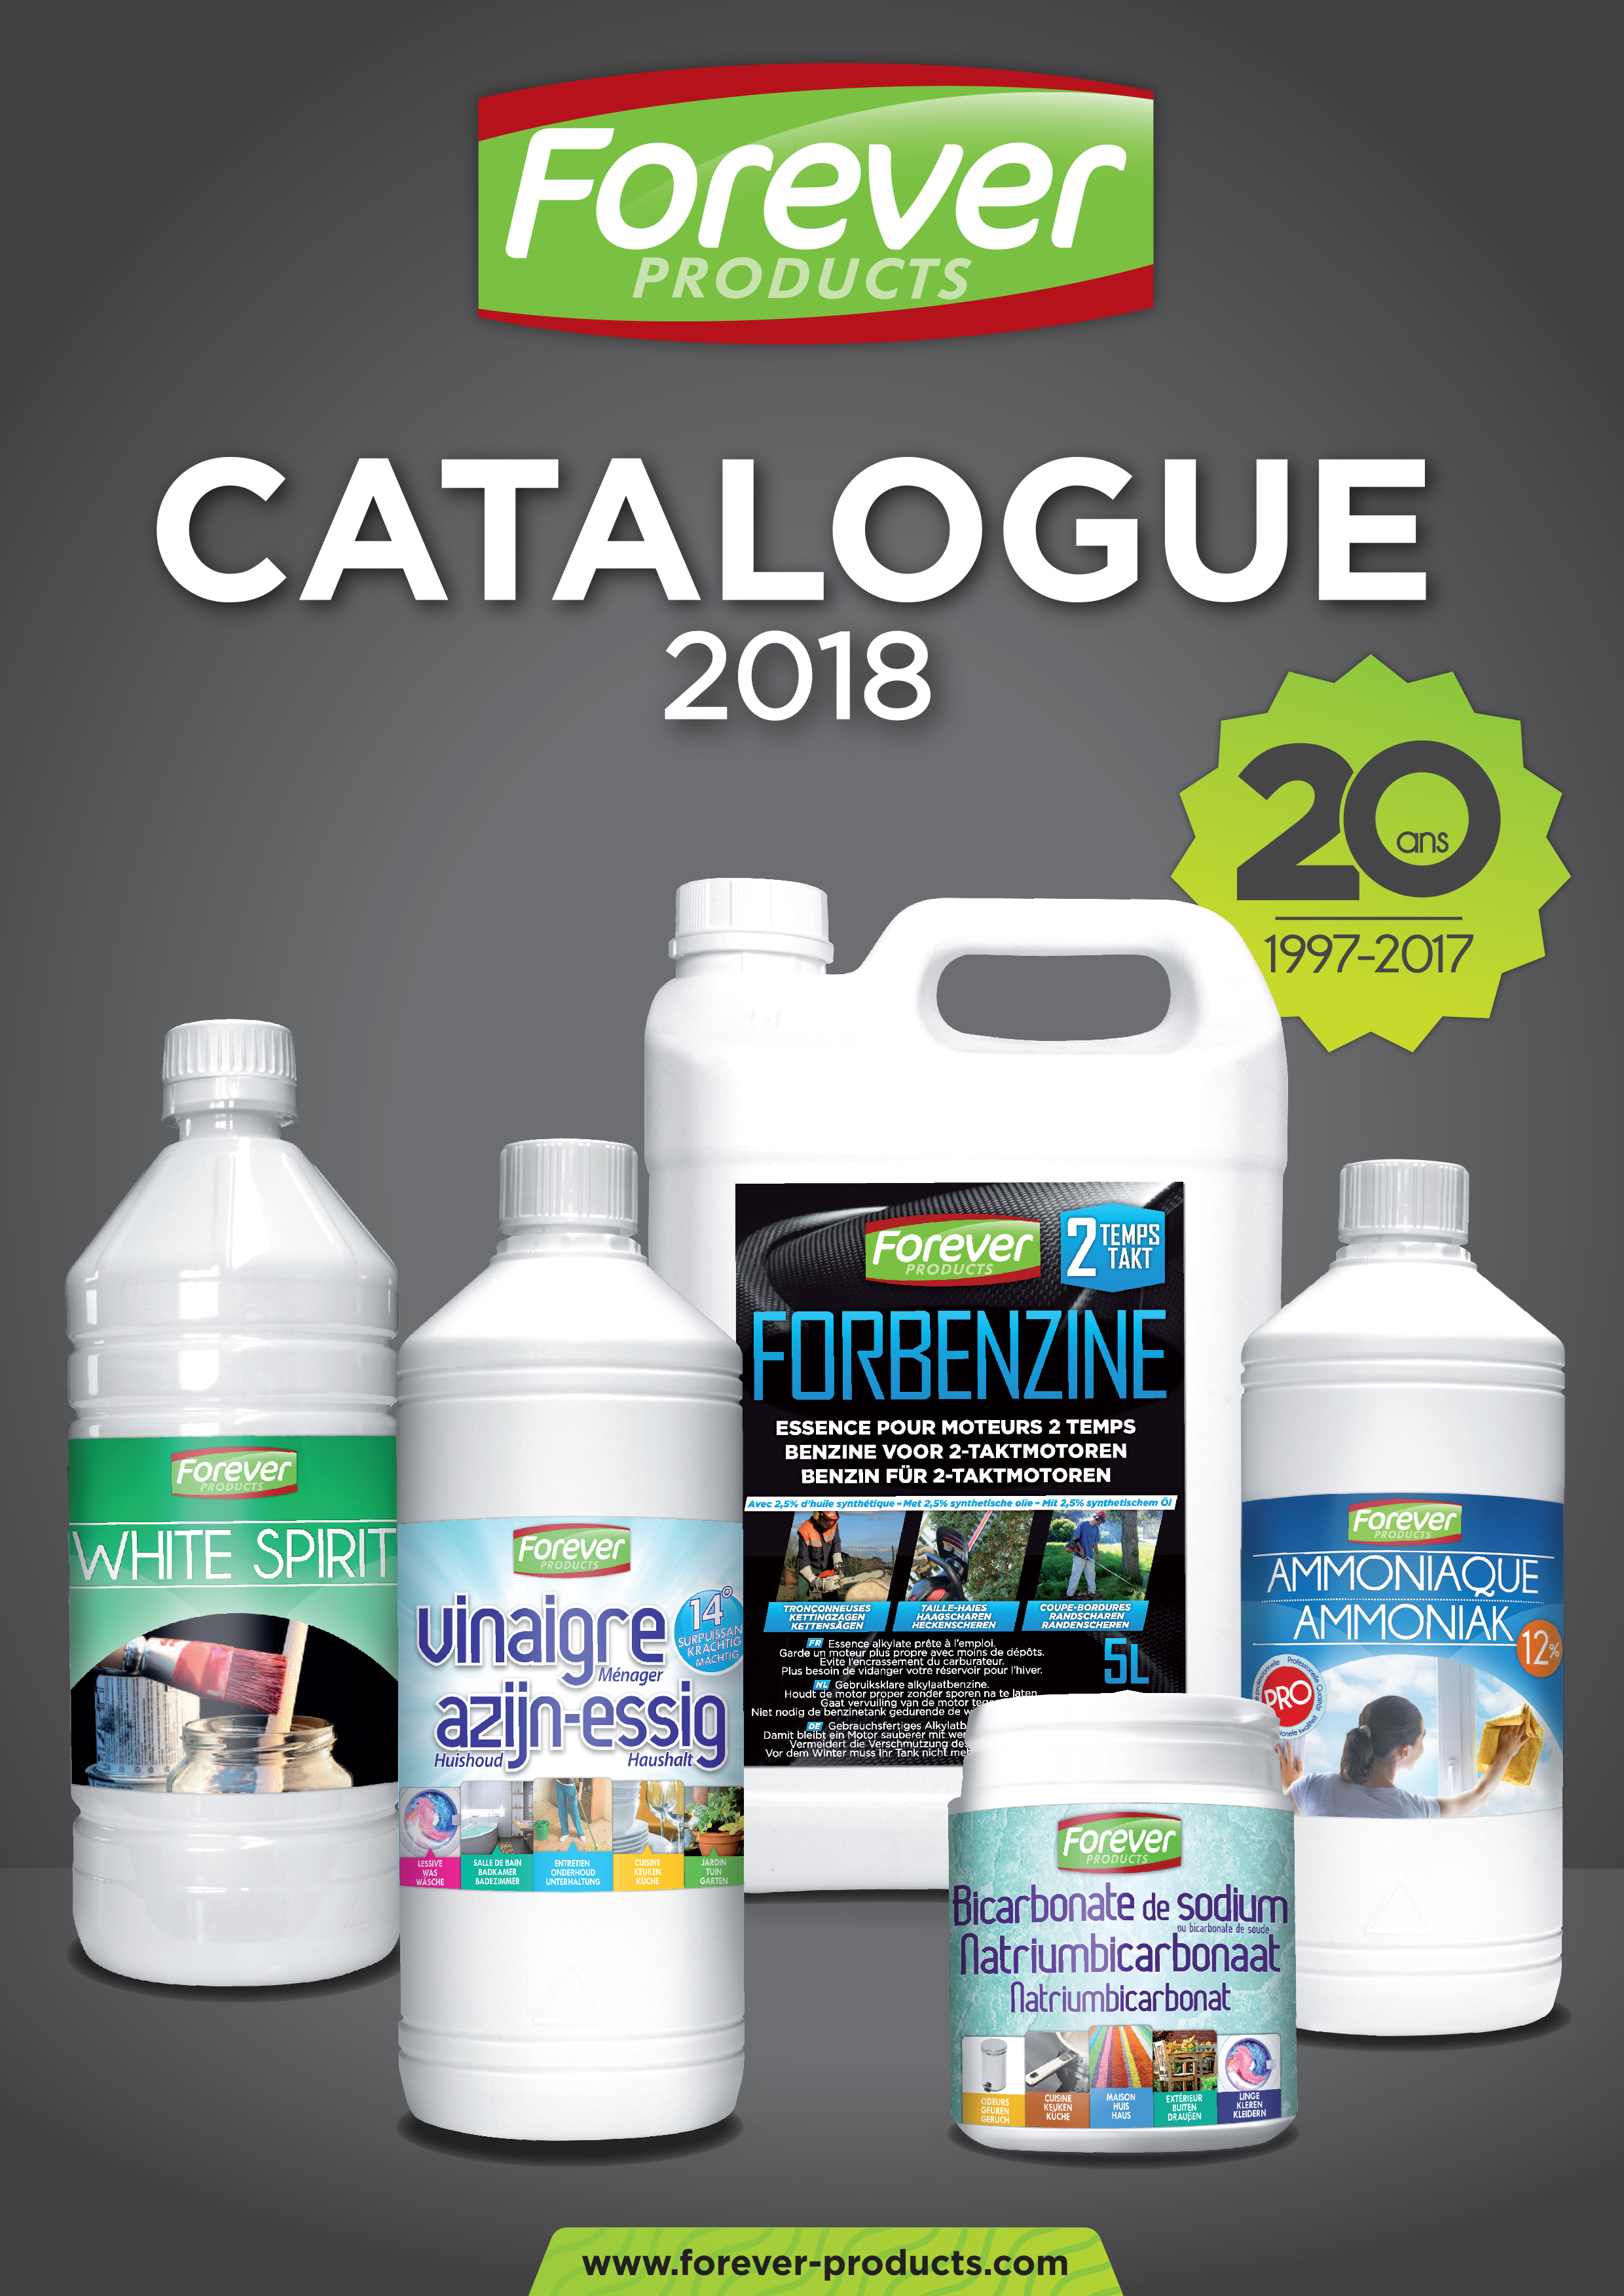 Couverture catalogue complet 2018 FR FOREVER PRODUCTS